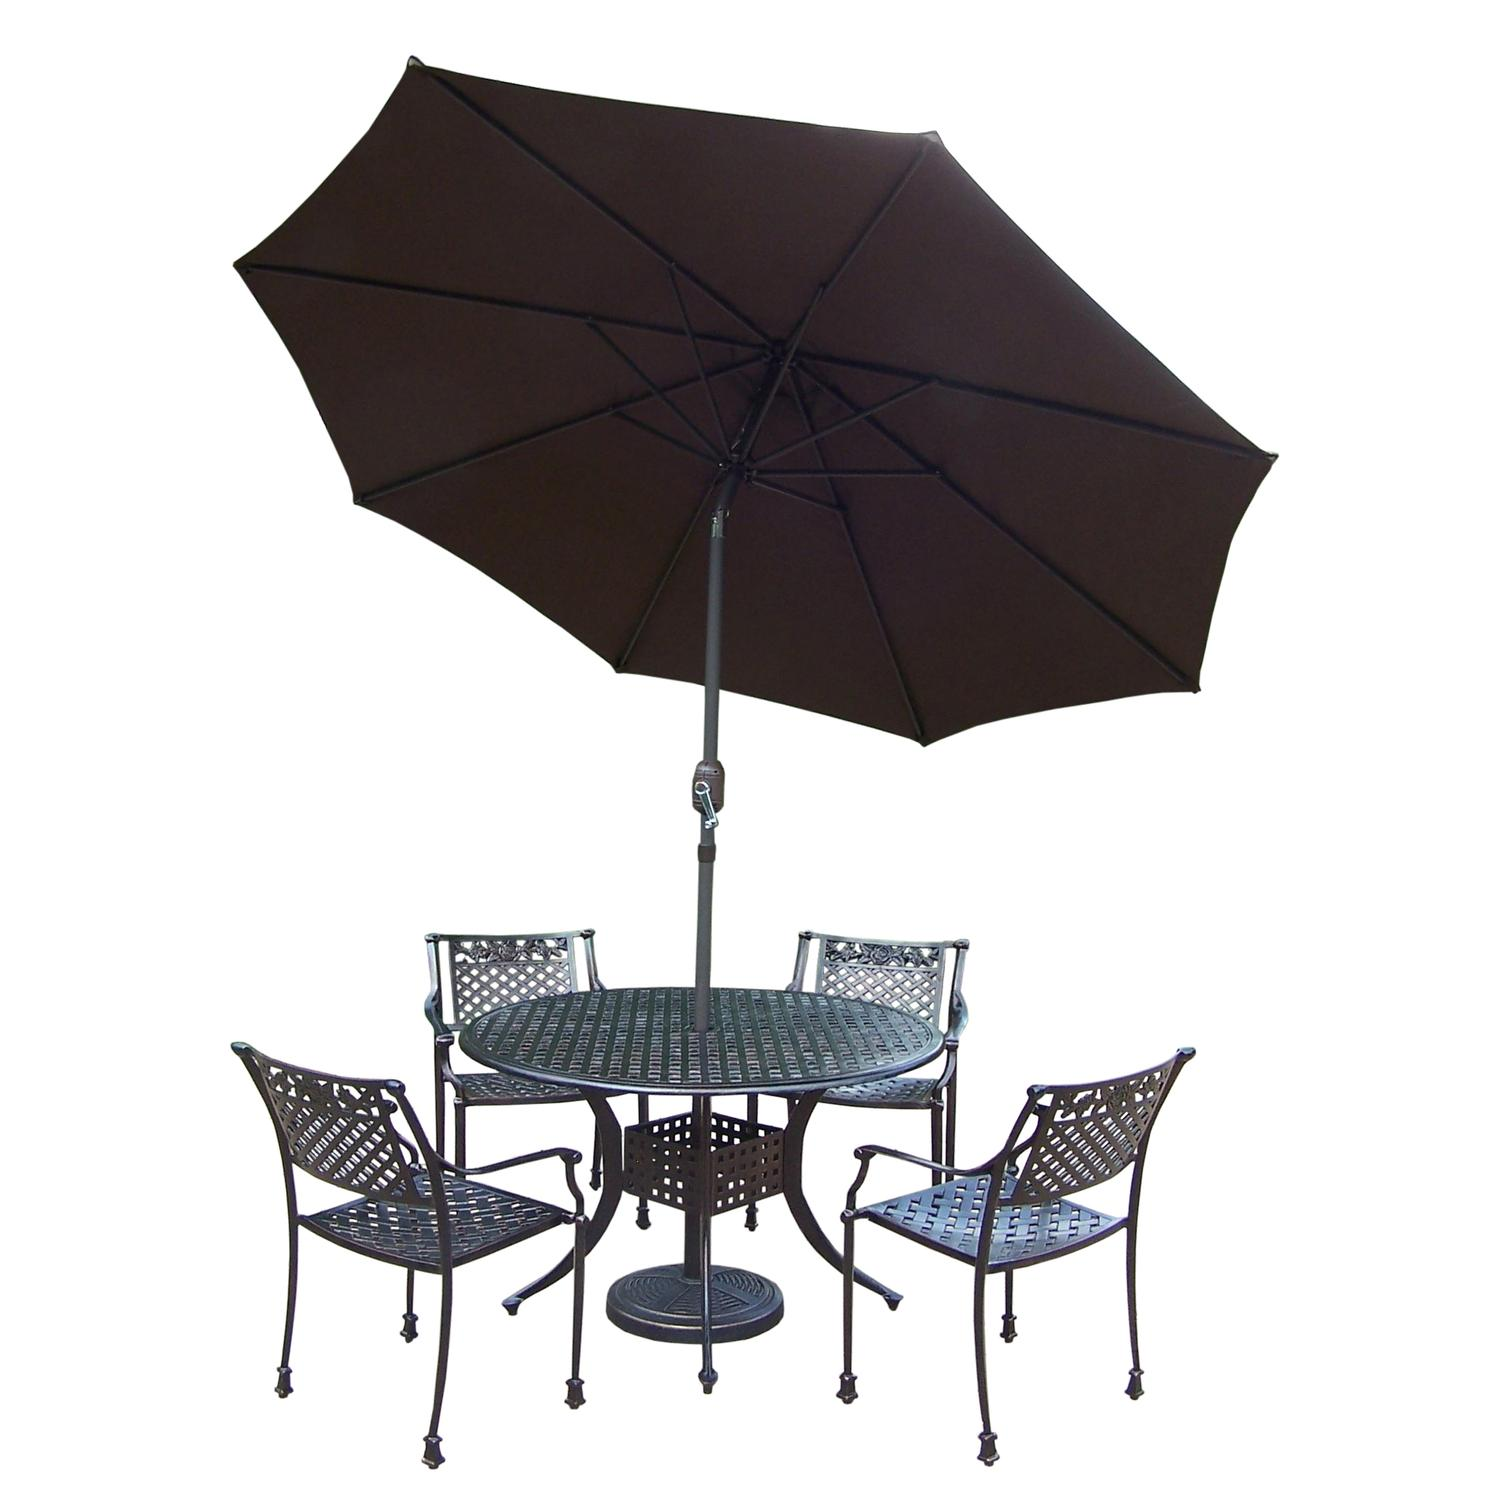 7 Pc. Antiqued Bronze Ornate Rose Outdoor Patio Dining Set with Brown Umbrella